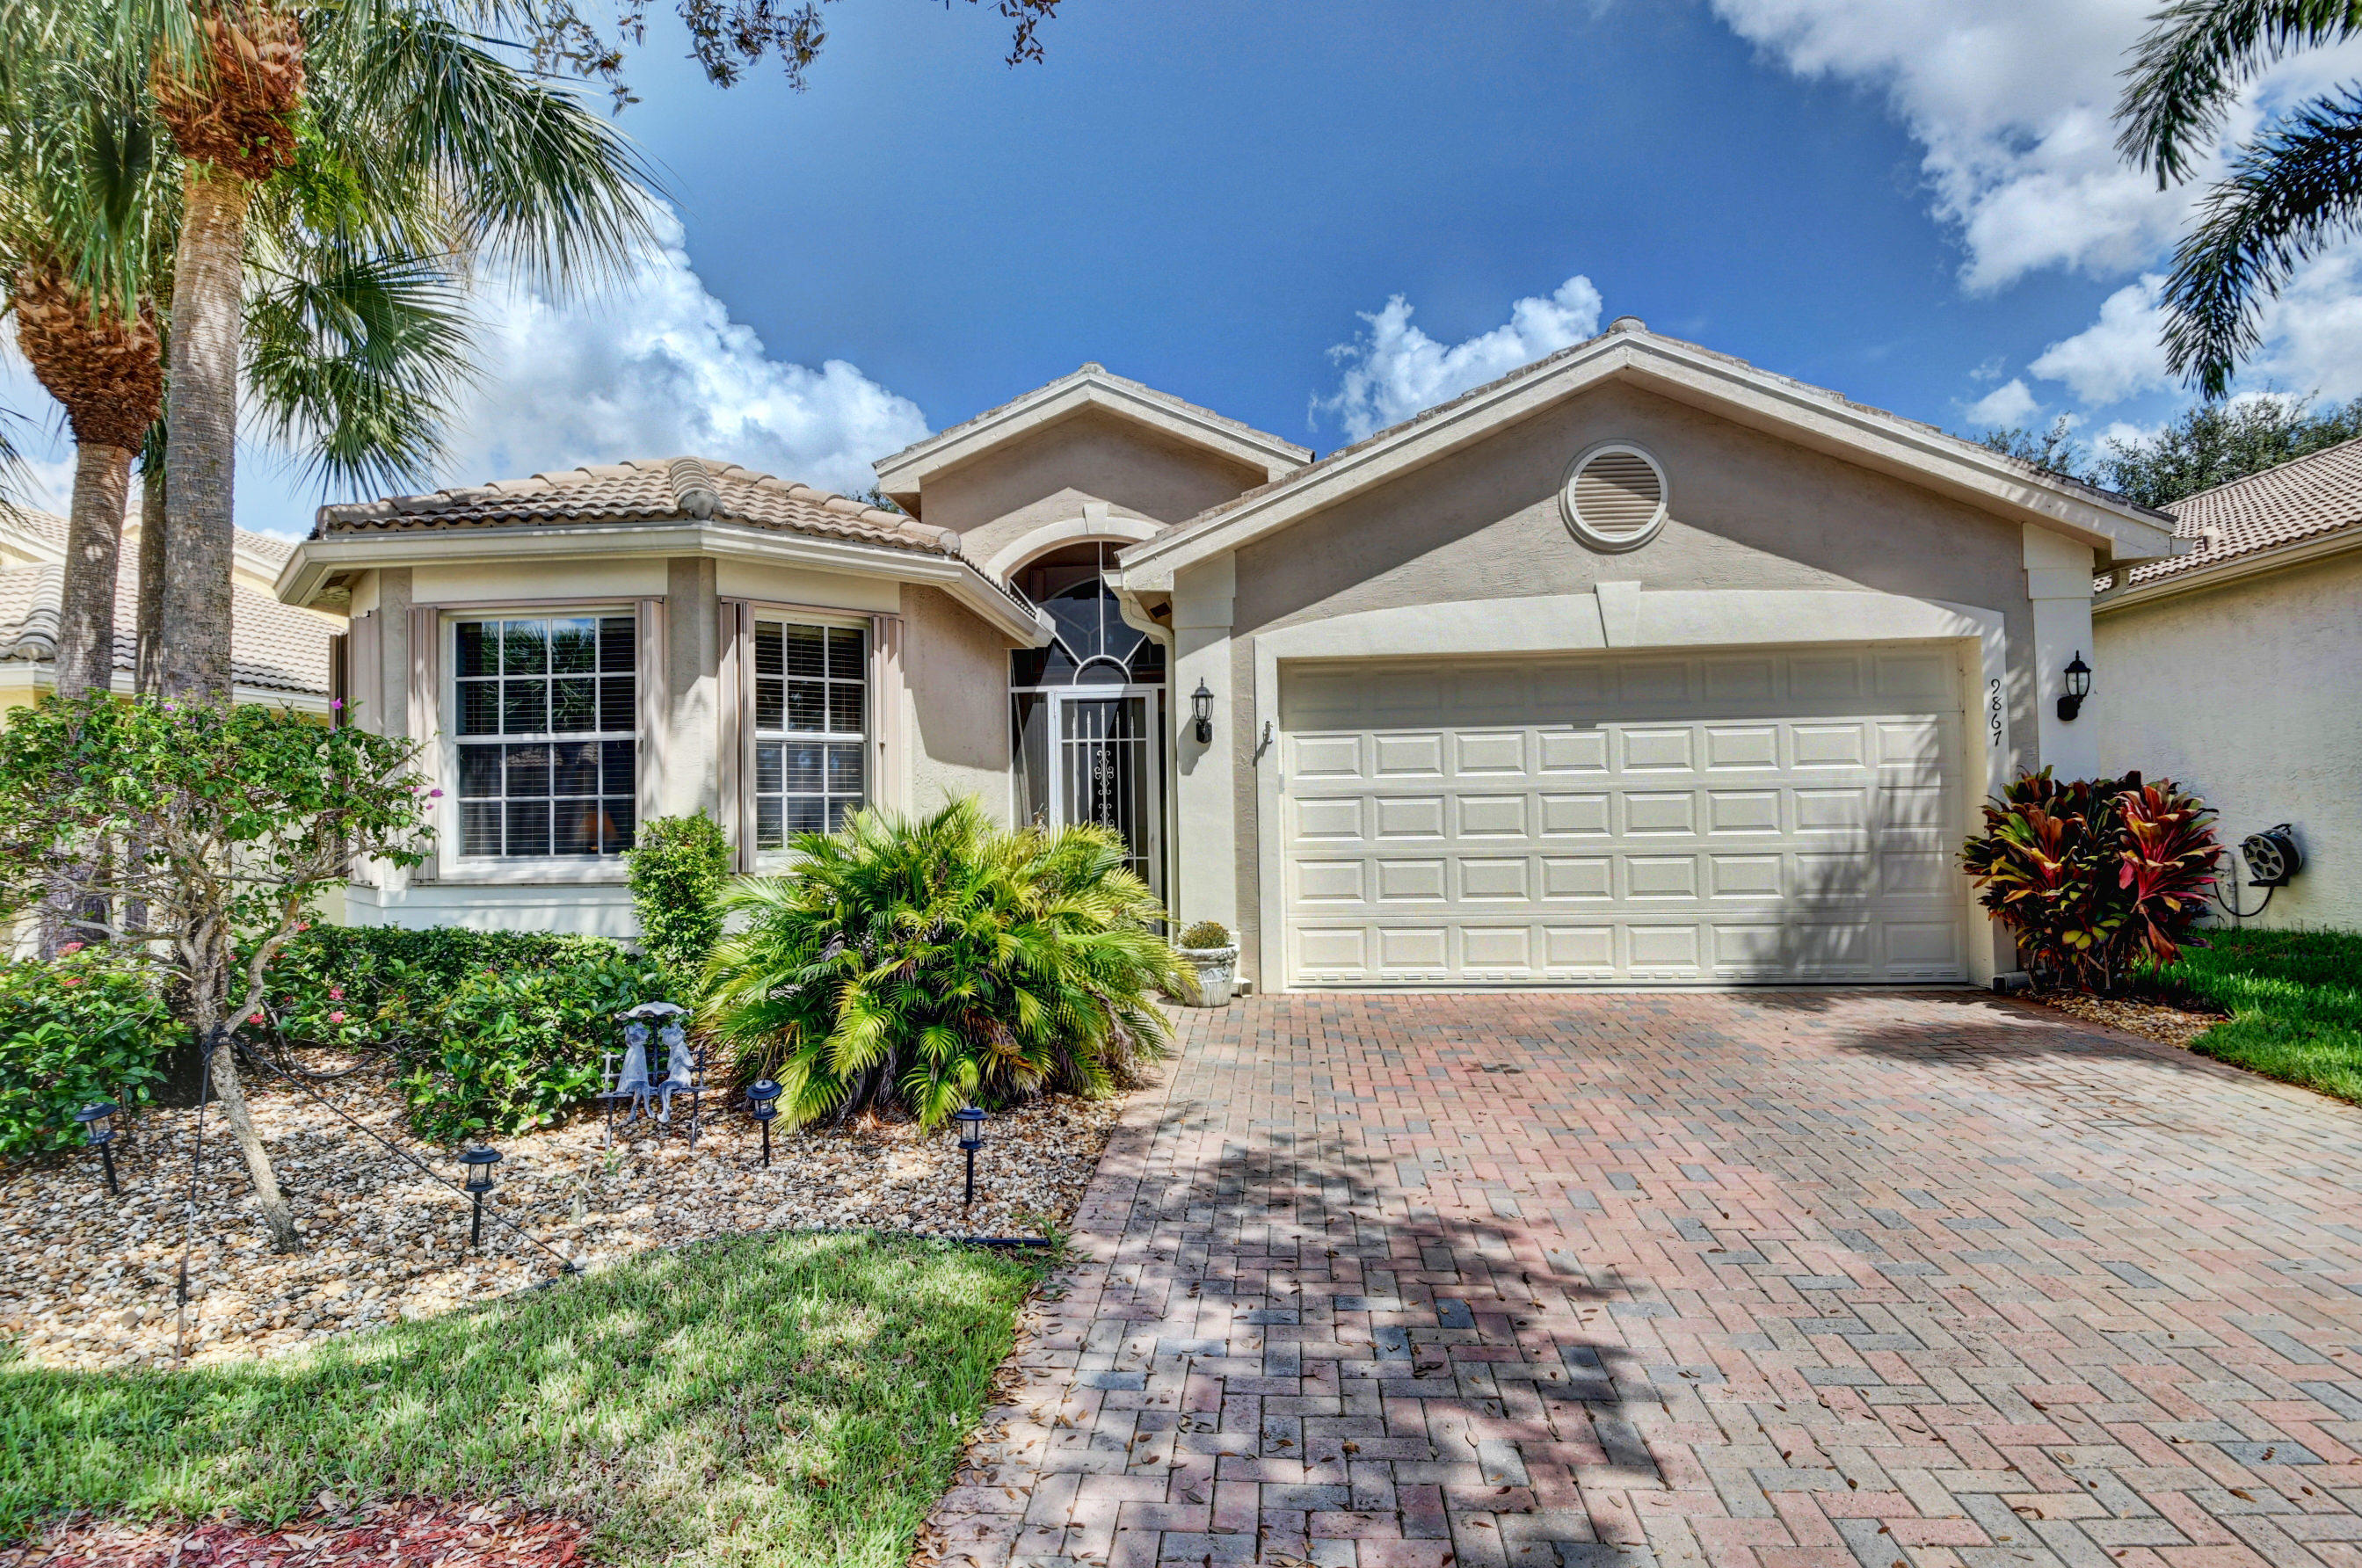 VALENCIA SHORES home 9867 Chantilly Point Lane Lake Worth FL 33467